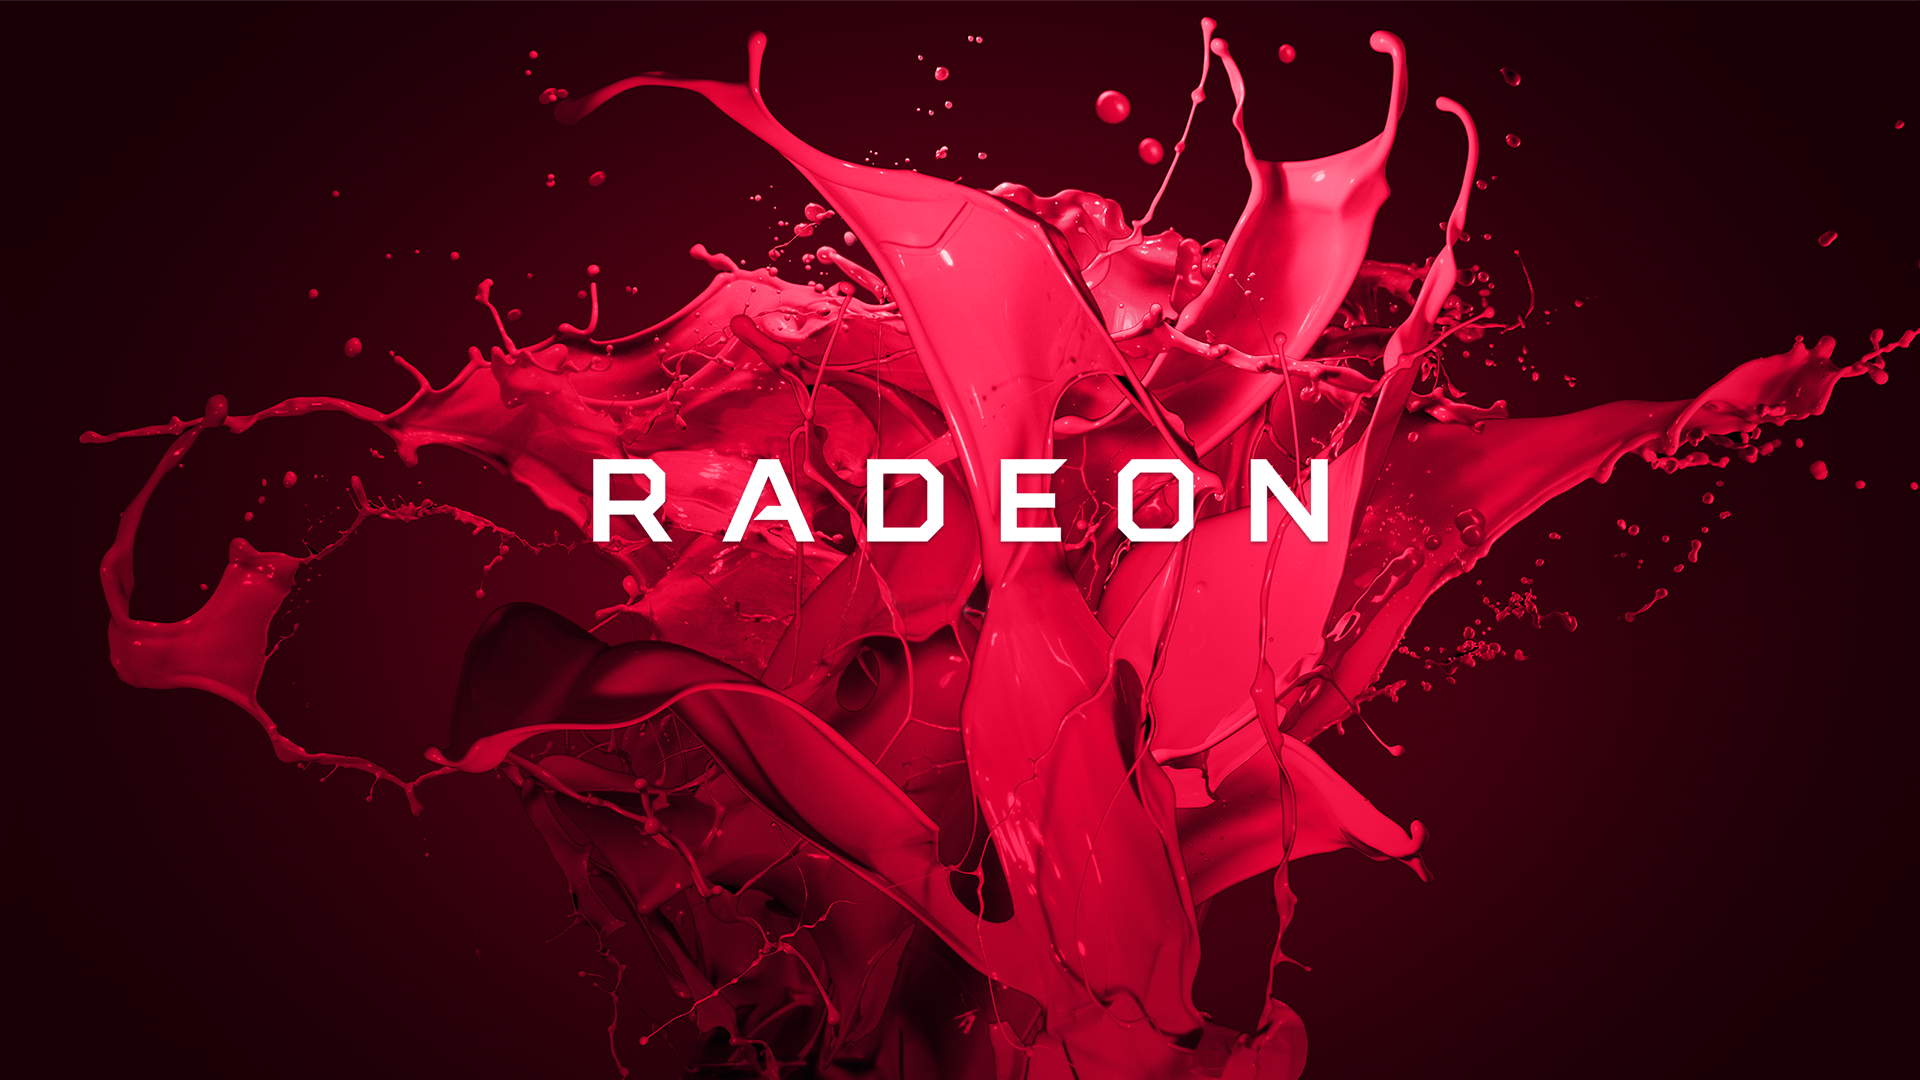 Download the Latest Radeon Drivers.